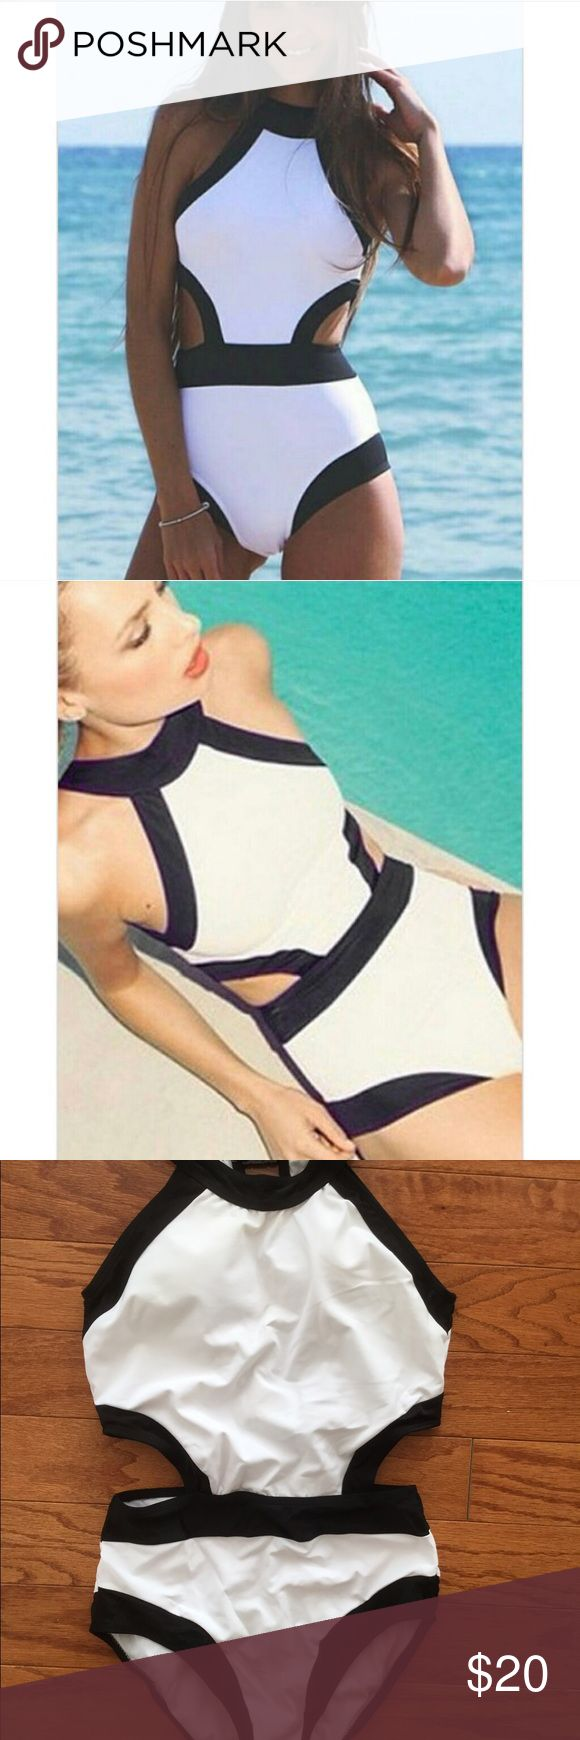 Black and white one piece swim suit One piece swimsuit with cut out sides. Super cute and flattering. Bathing suit is so classy! No brand, listed ASOS for views. ASOS Swim One Pieces